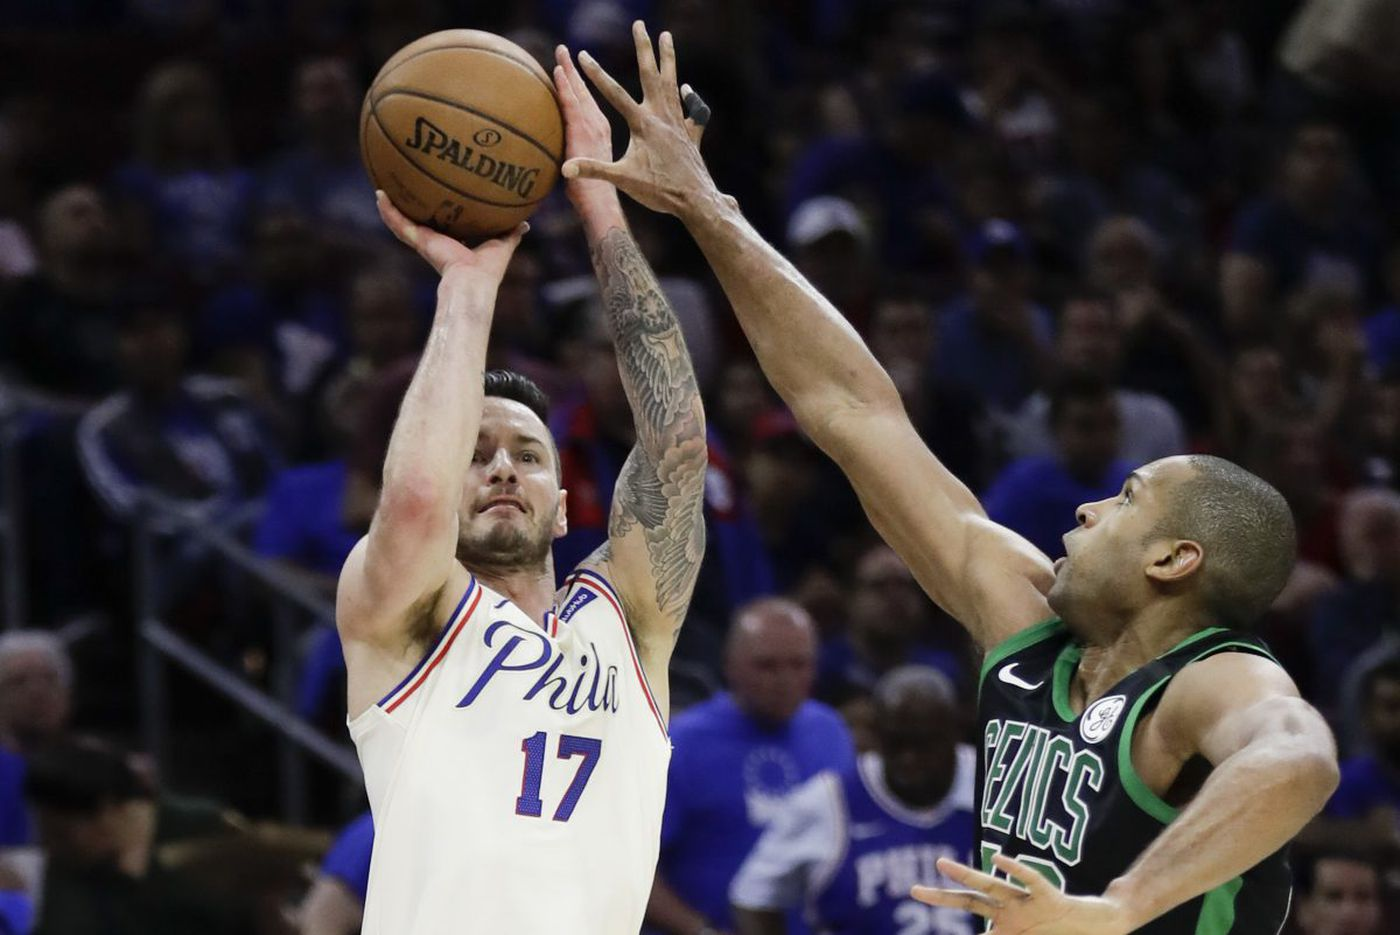 Sixers-Celtics Game 5 preview: A three spree would help Philly